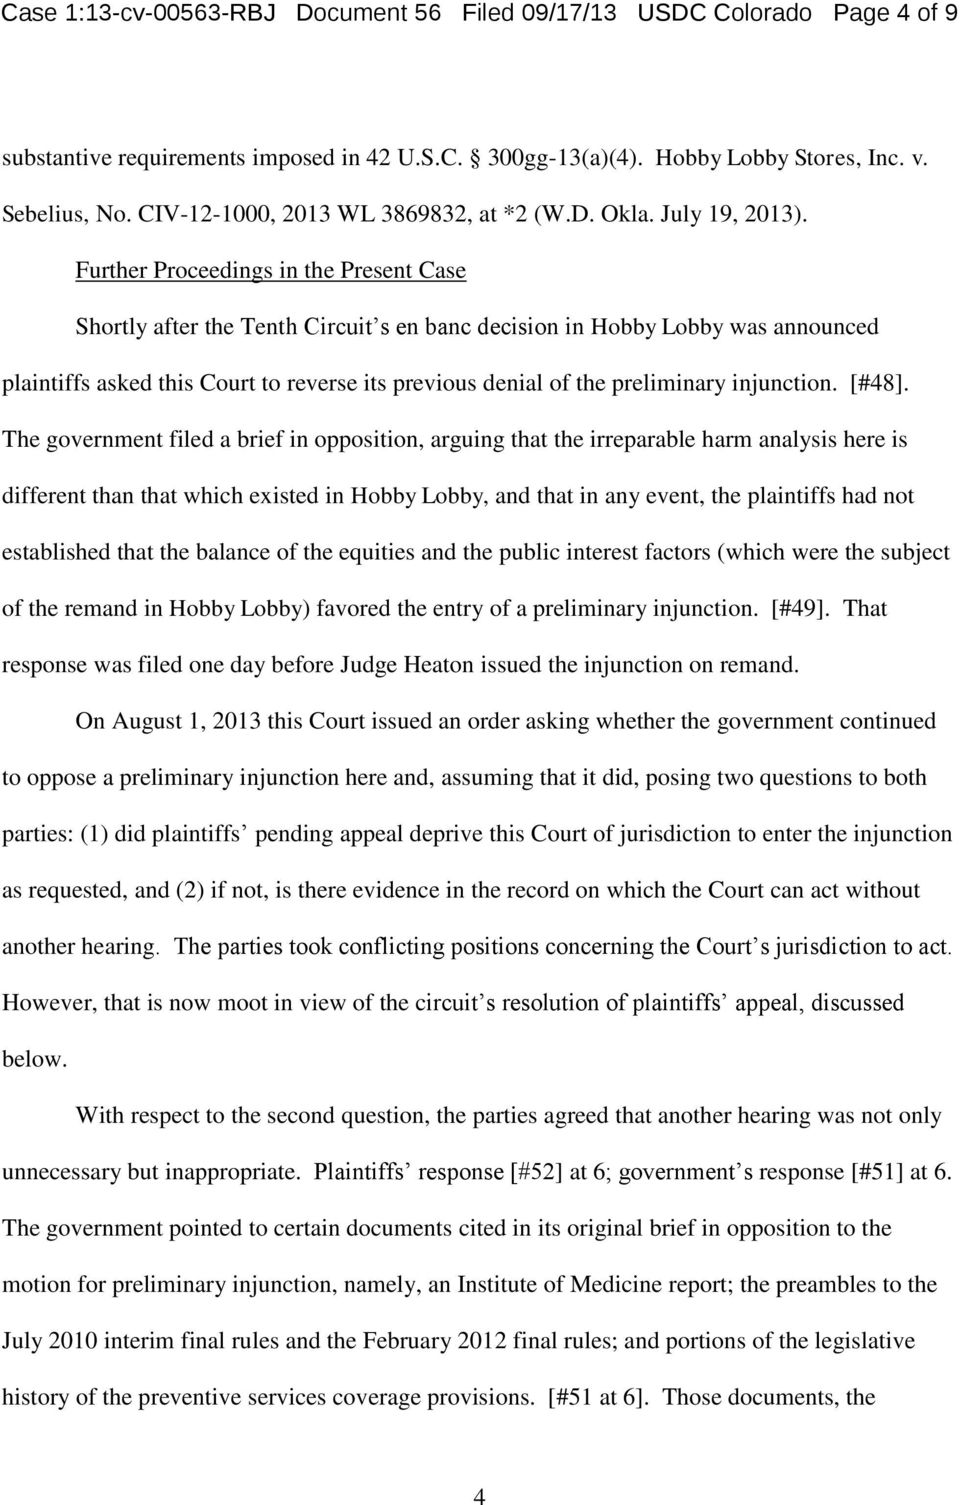 Further Proceedings in the Present Case Shortly after the Tenth Circuit s en banc decision in Hobby Lobby was announced plaintiffs asked this Court to reverse its previous denial of the preliminary